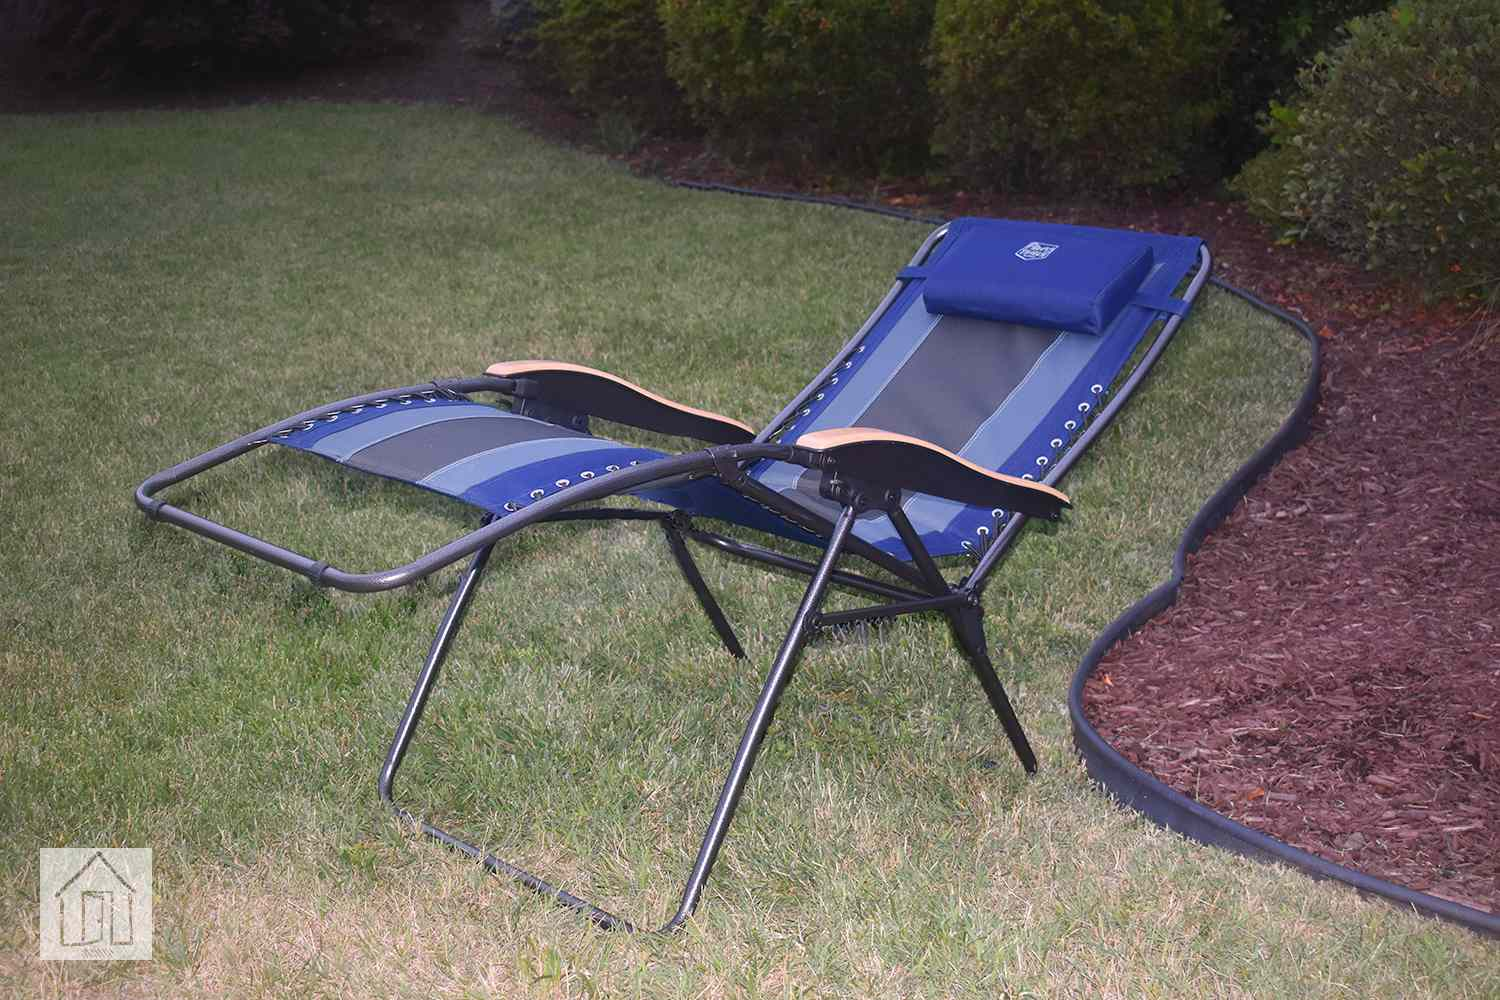 Timber Ridge Zero Gravity Outdoor Lounger Review